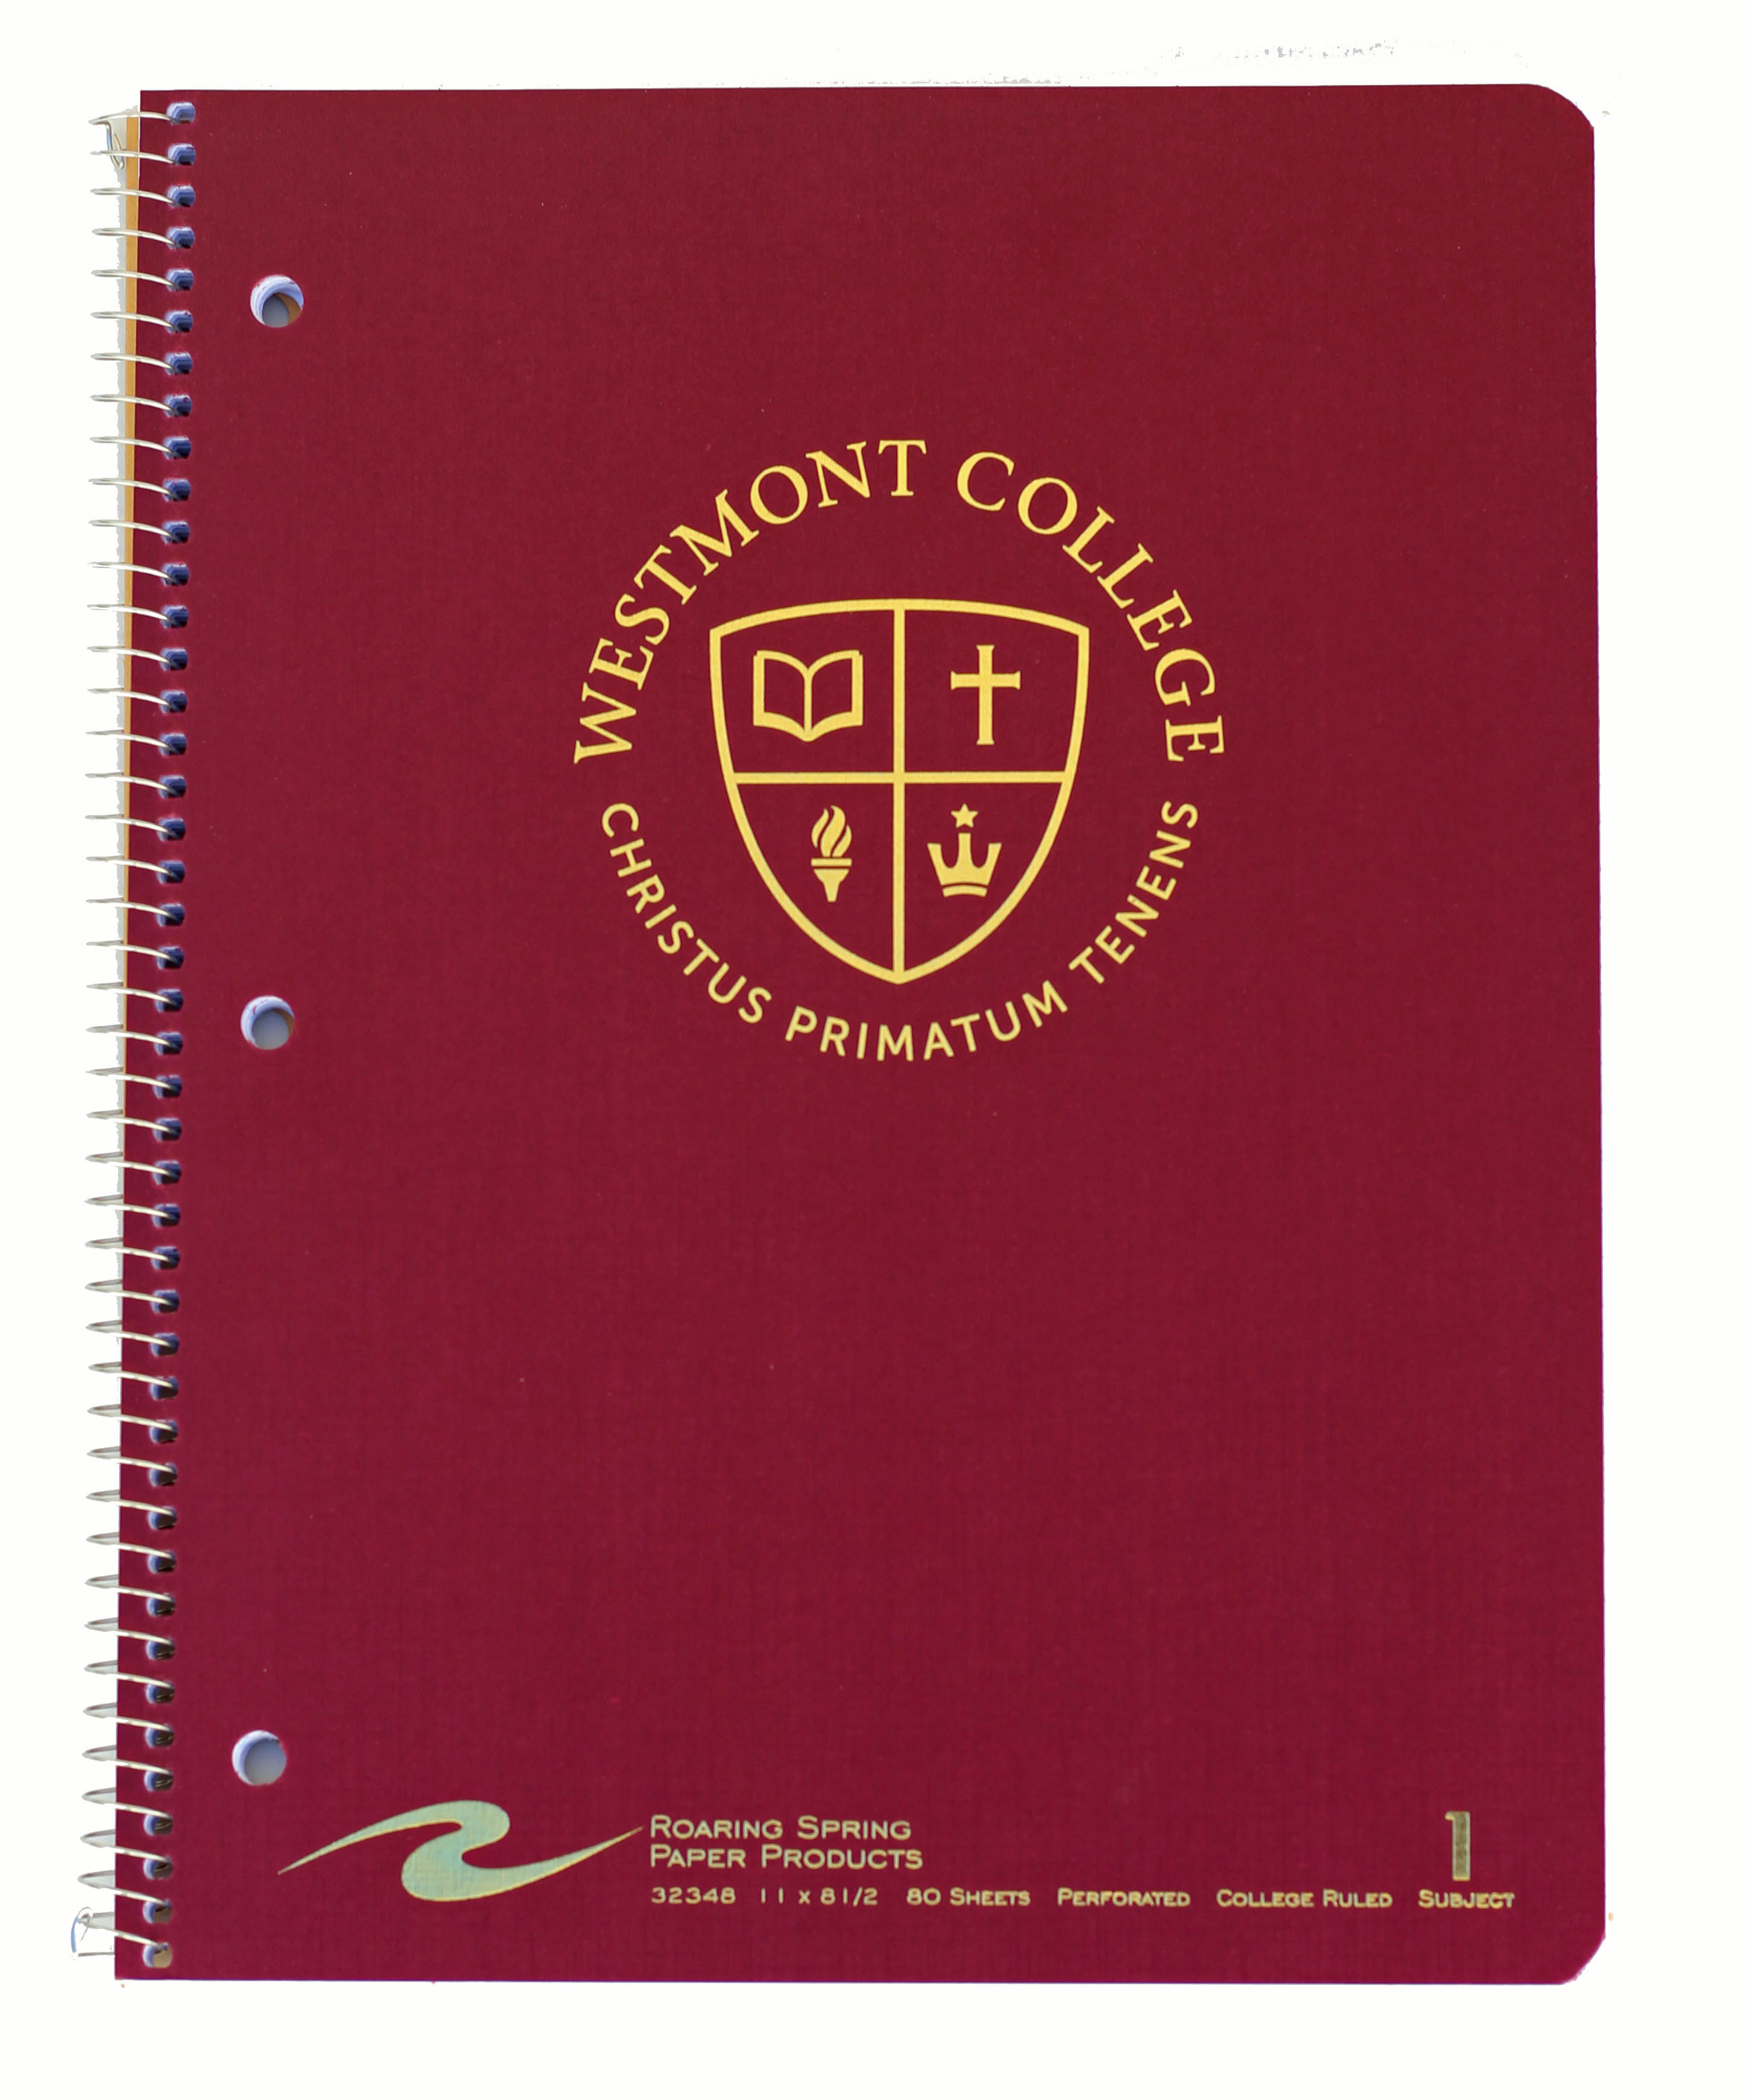 Image for the Westmont One Subject Notebook product